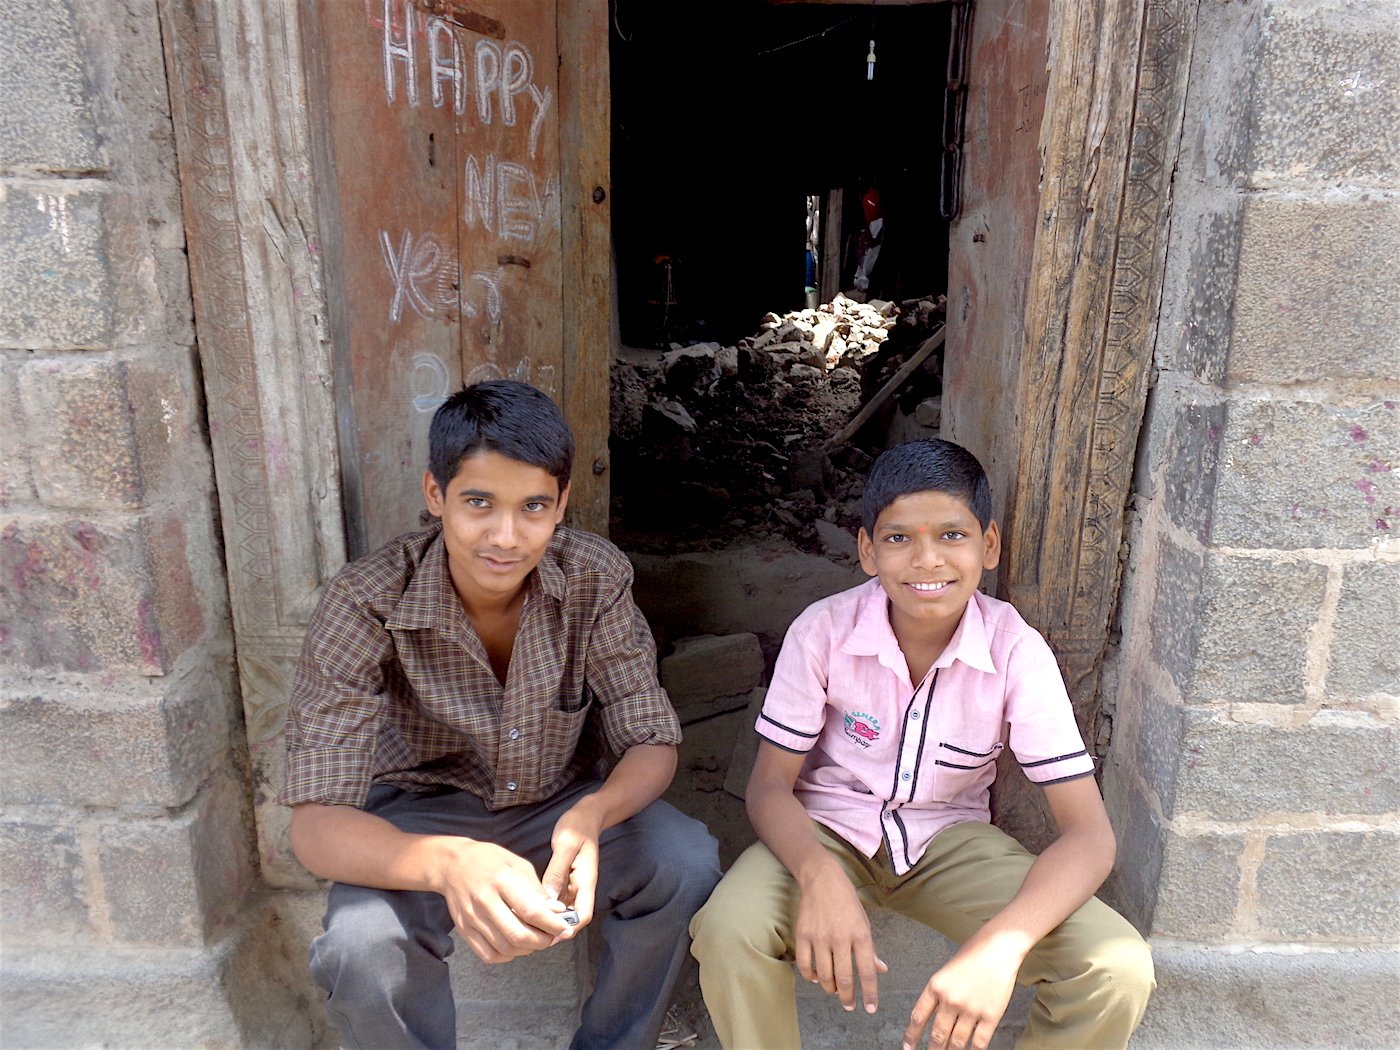 With their school closed for the summer vacation, Prithviraj (left) and Aadesh Shirsath spend their mornings fetching water for the family. Parth MN